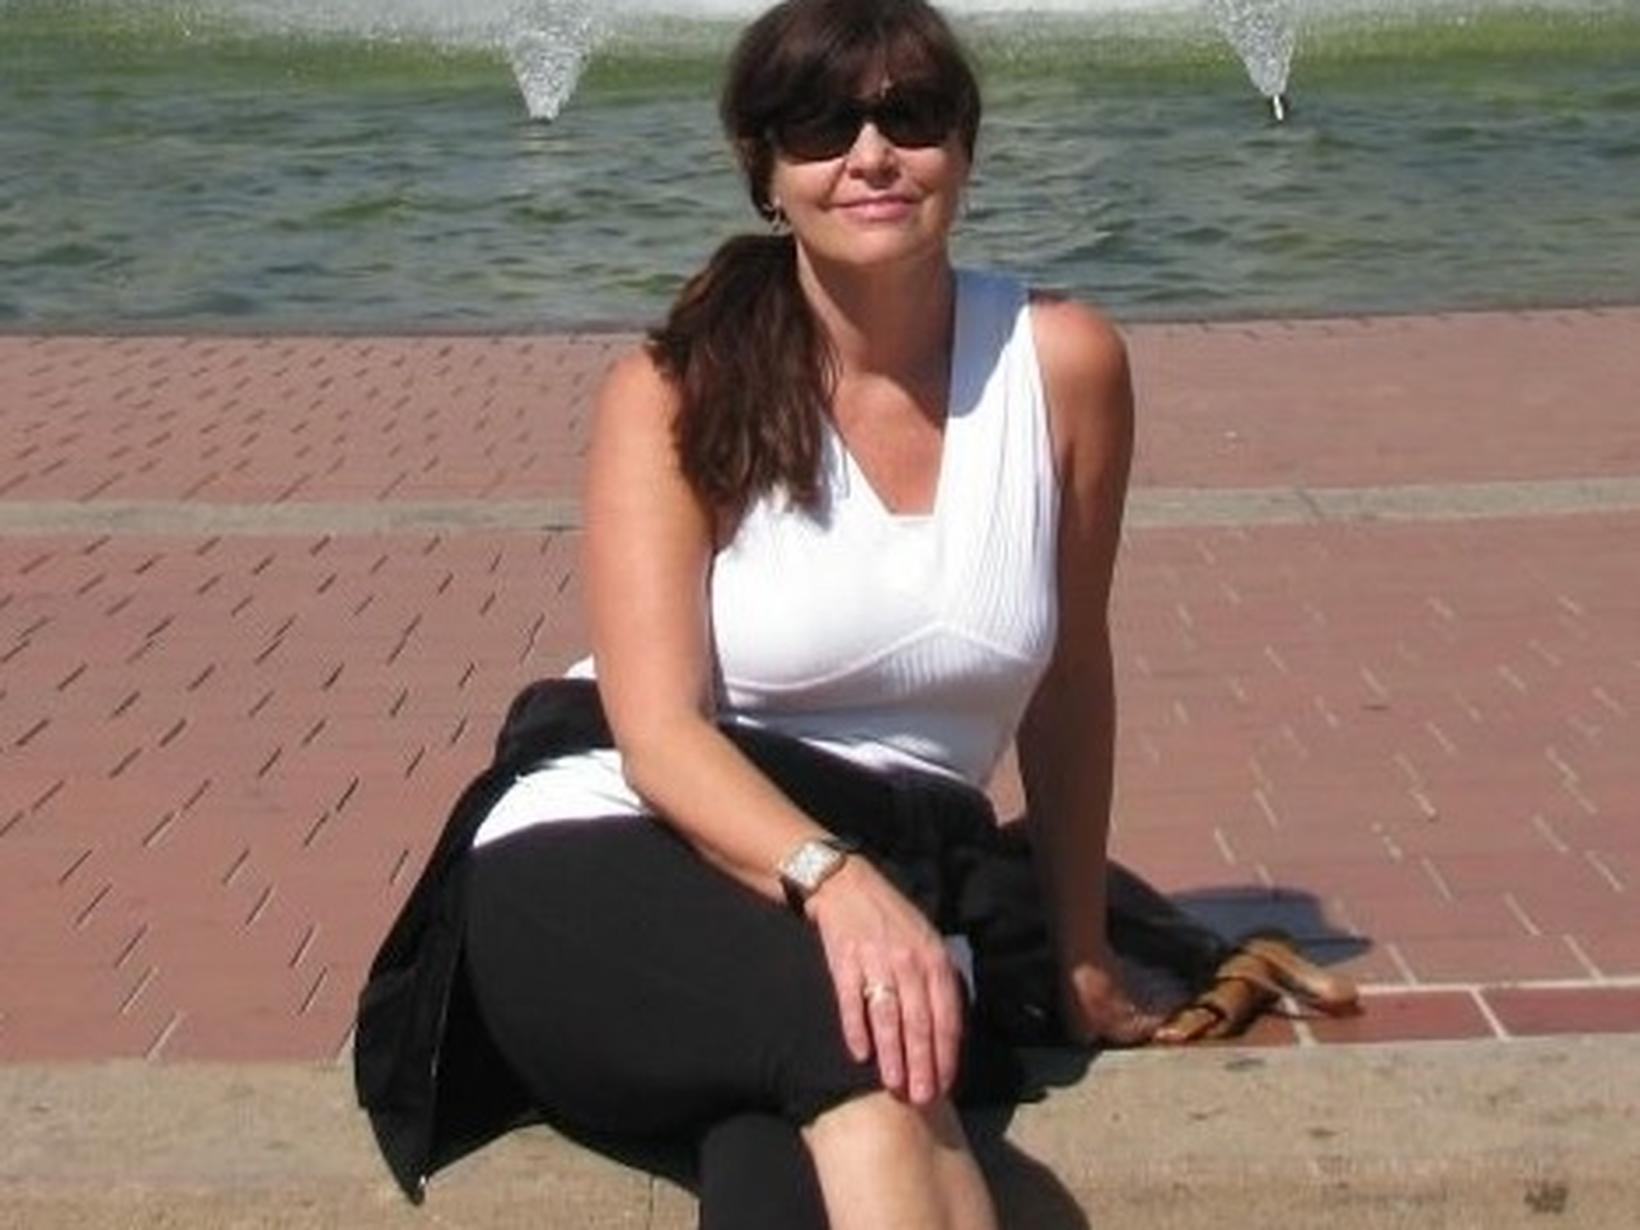 Stacey from San Diego, California, United States